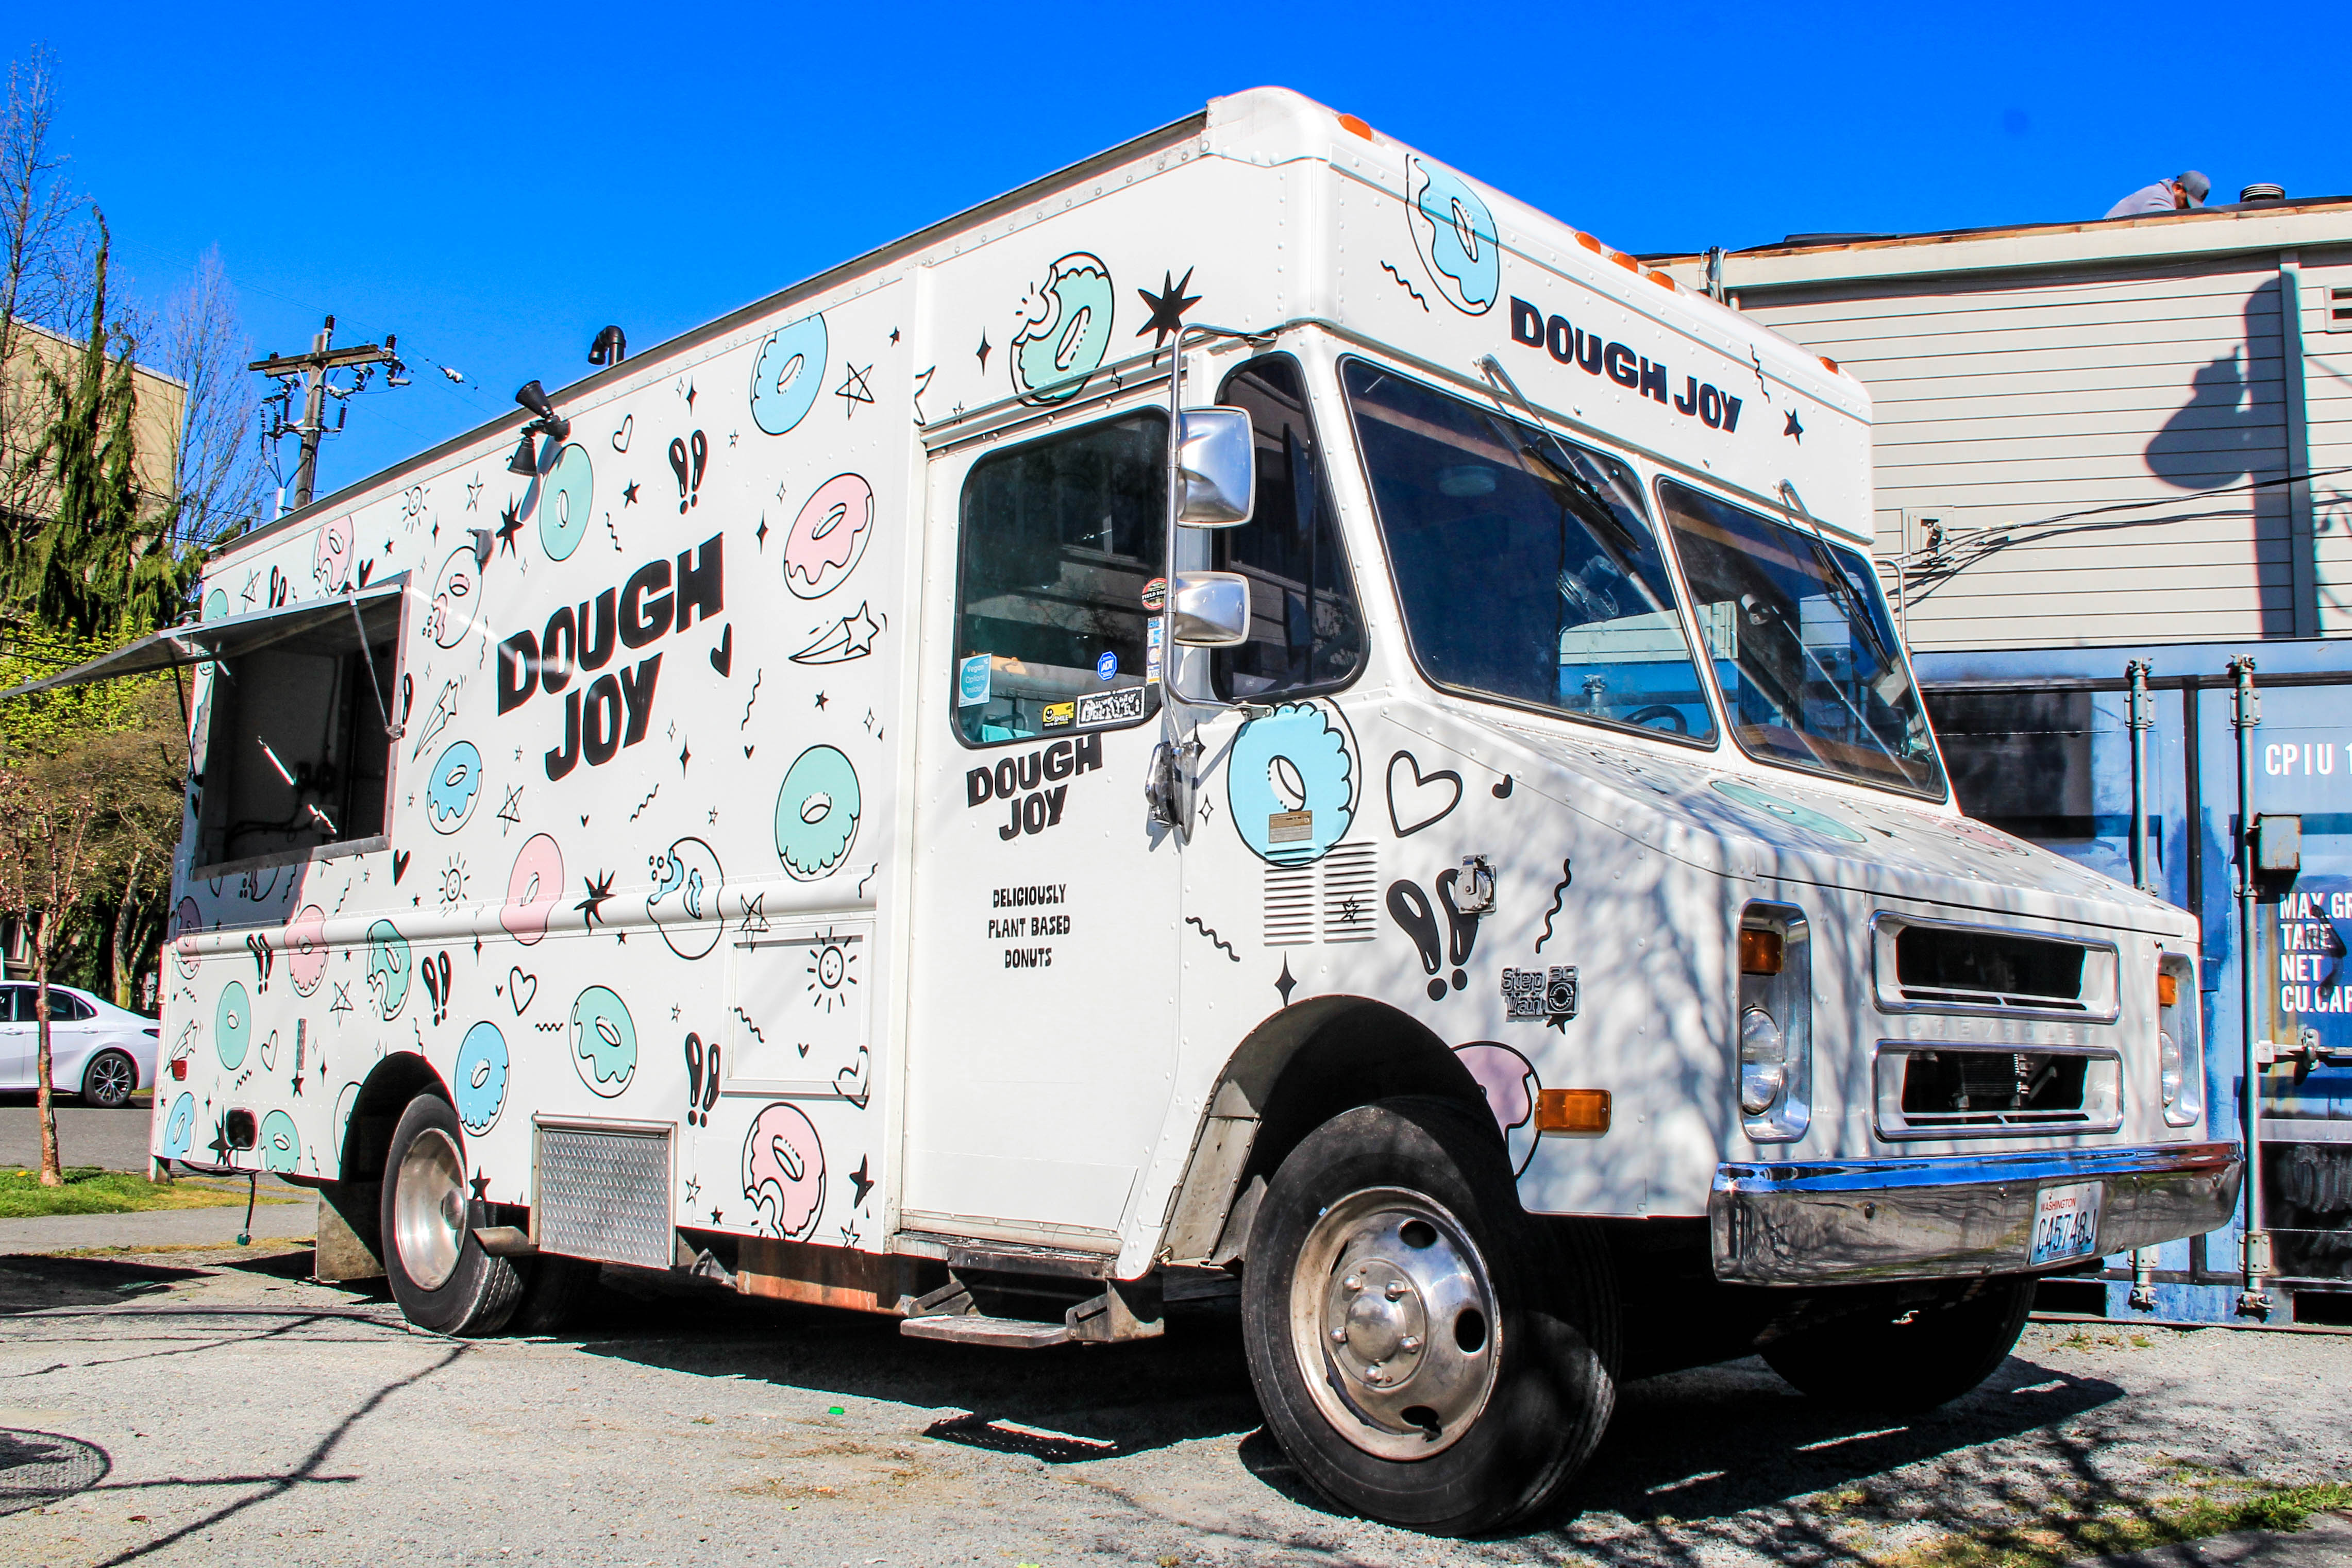 The colorful Dough Joy food truck, painted with various doughnuts on the side along with the business's name